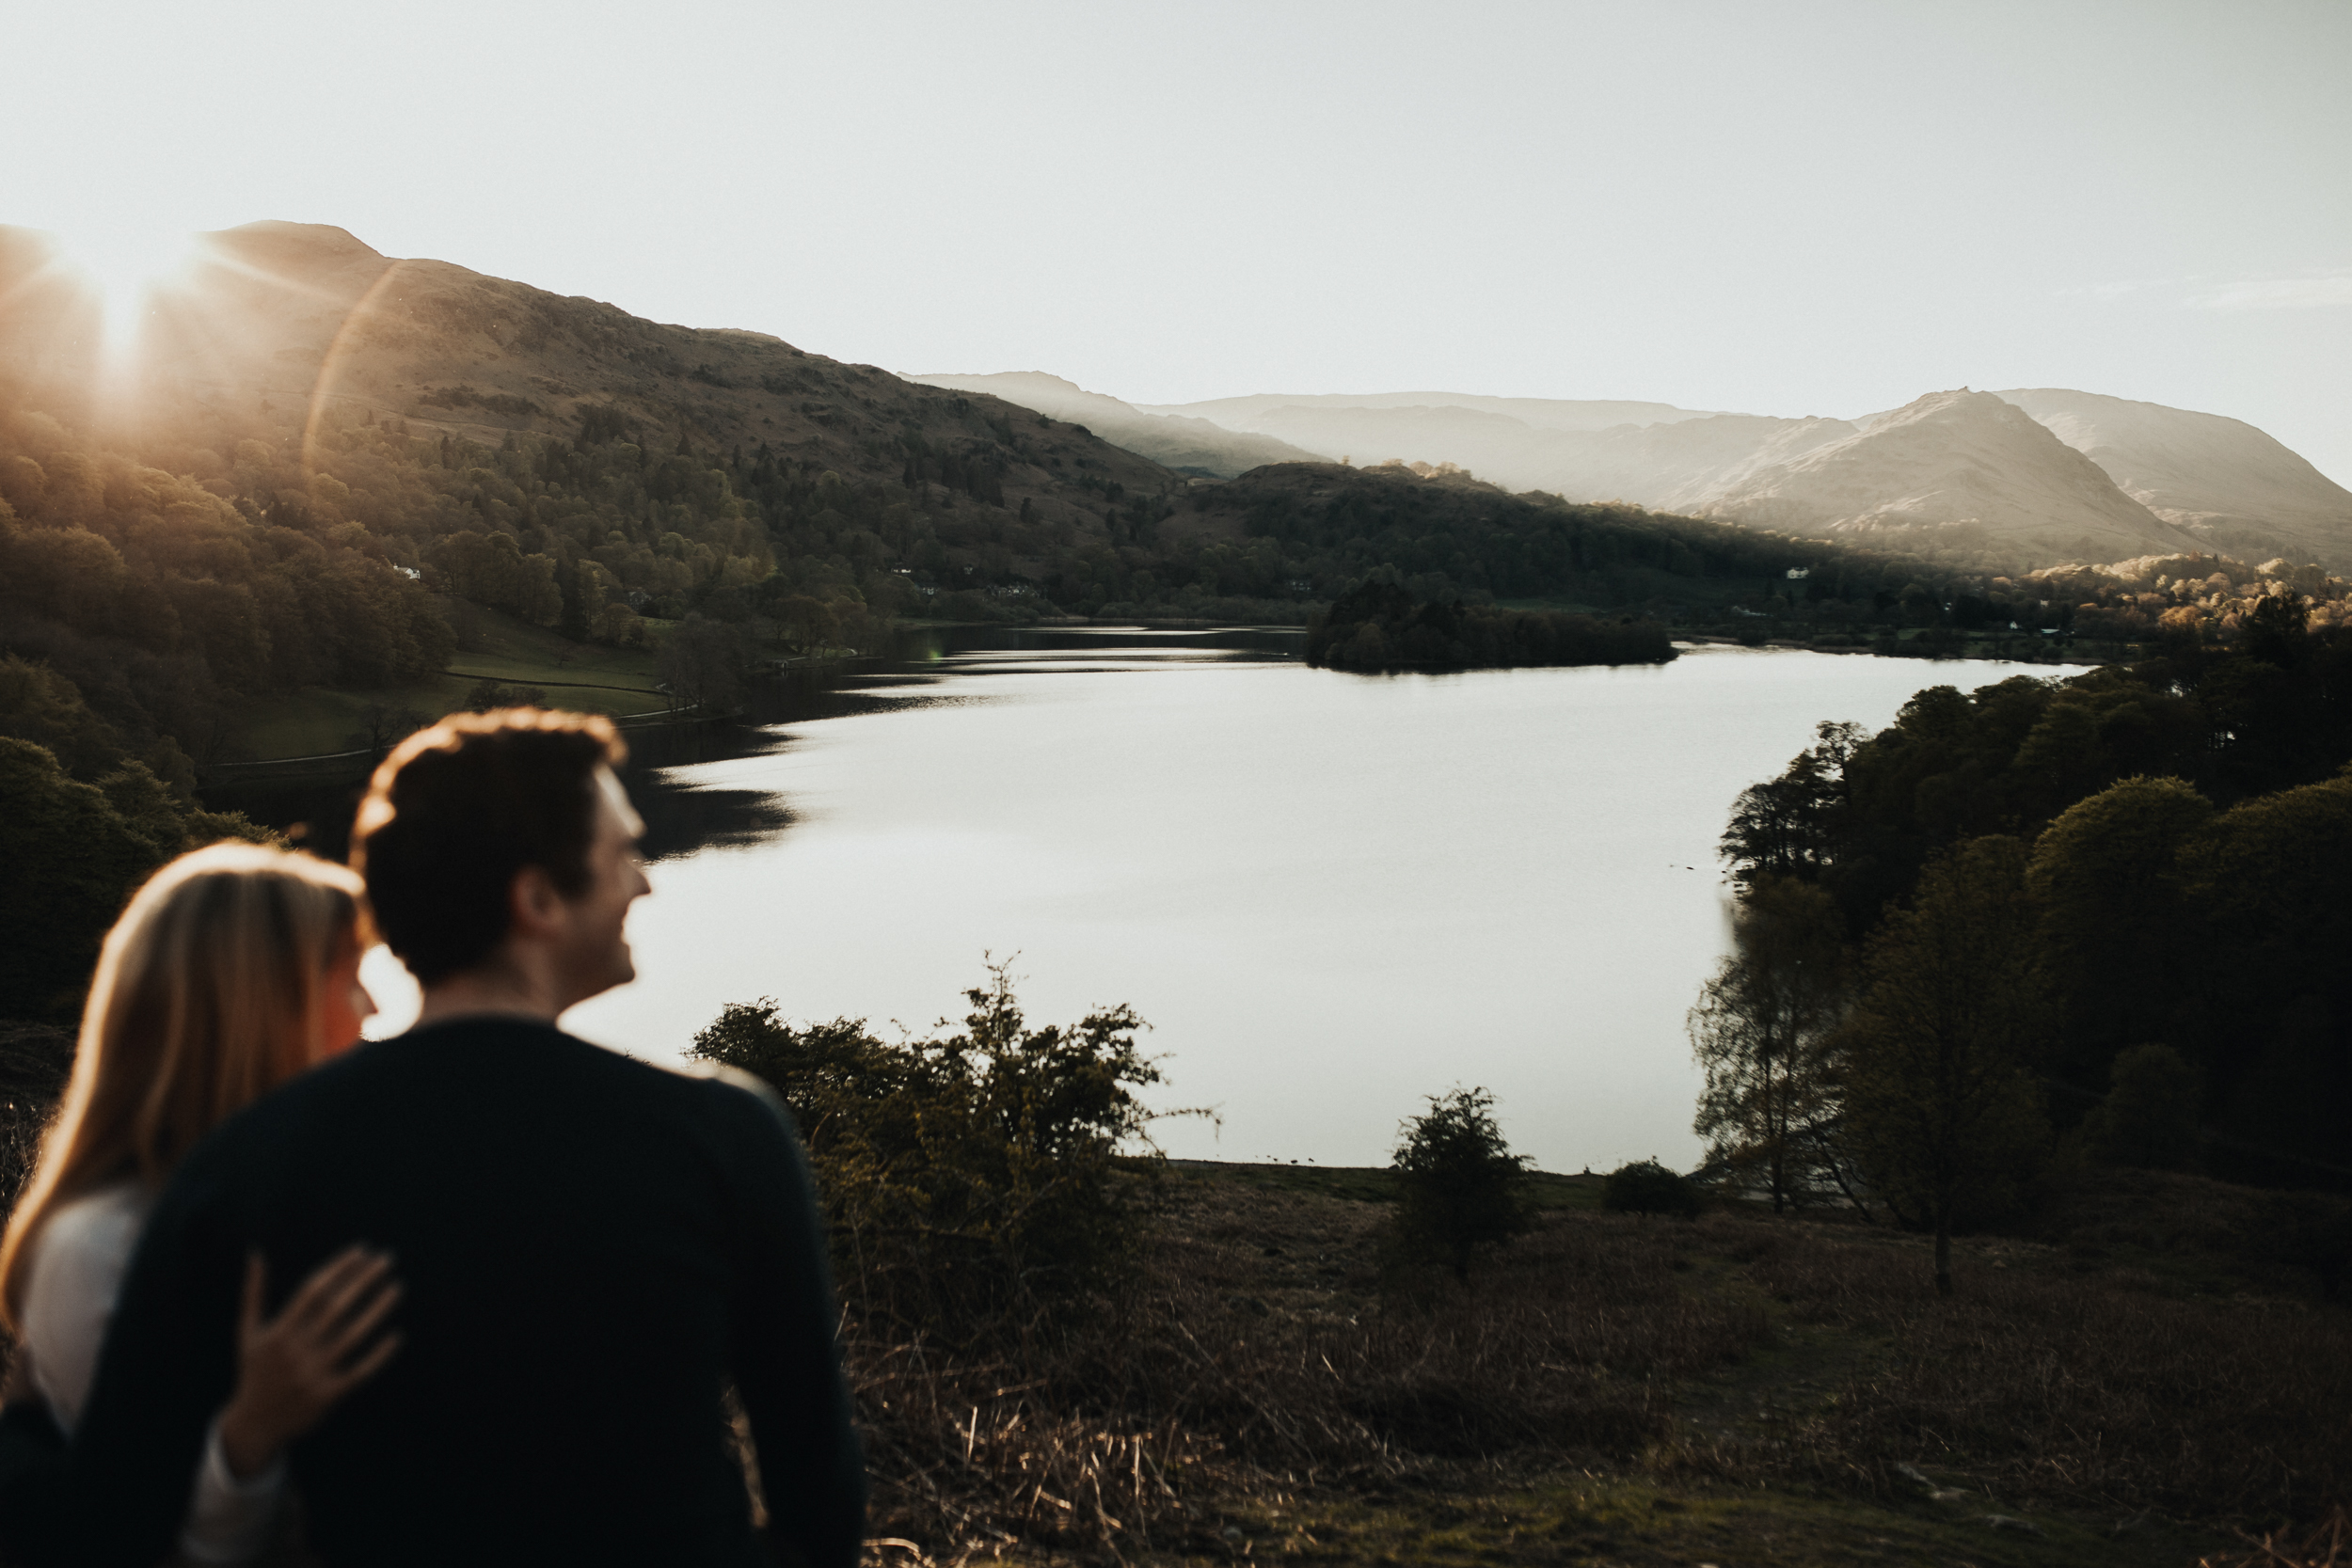 Claire-Clive-Engagement-Shoot-Lake-District-Darina-Stoda-Photography-109.jpg